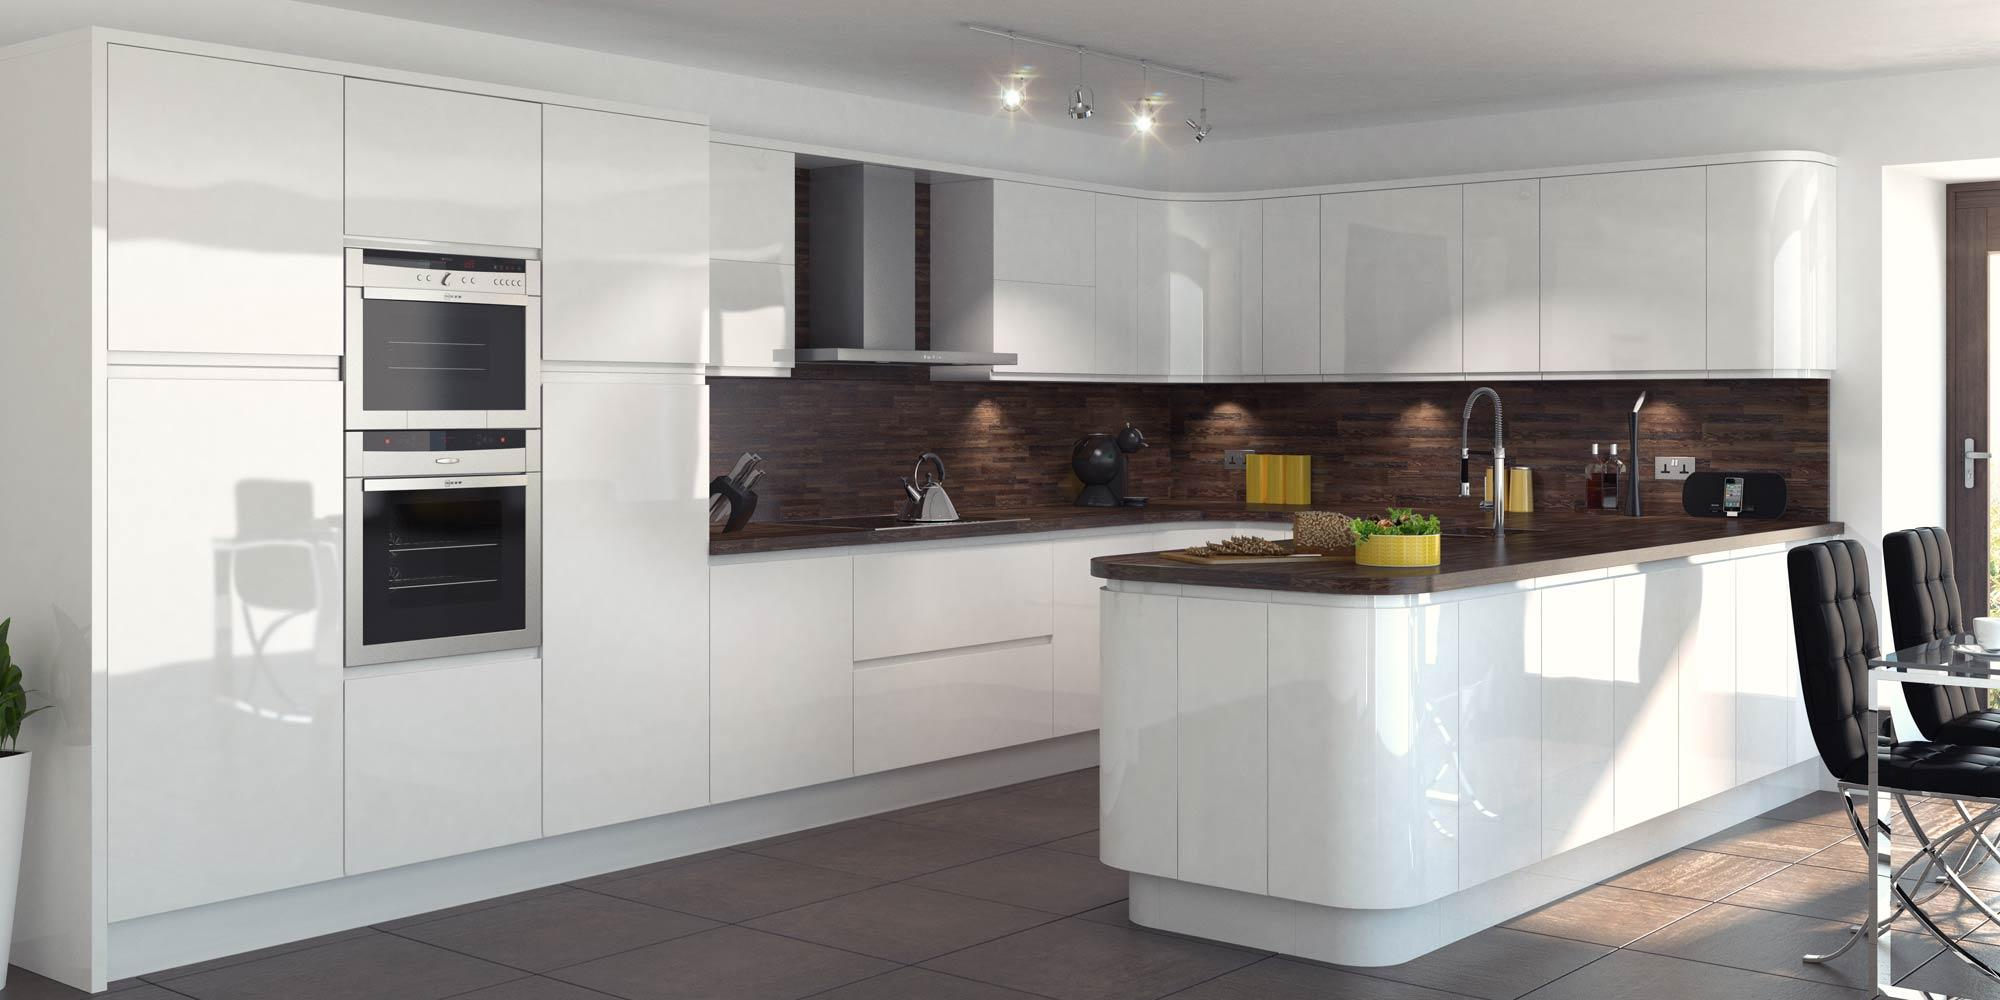 Pavilion View New Homes Westward Ho feature Stylish kitchens